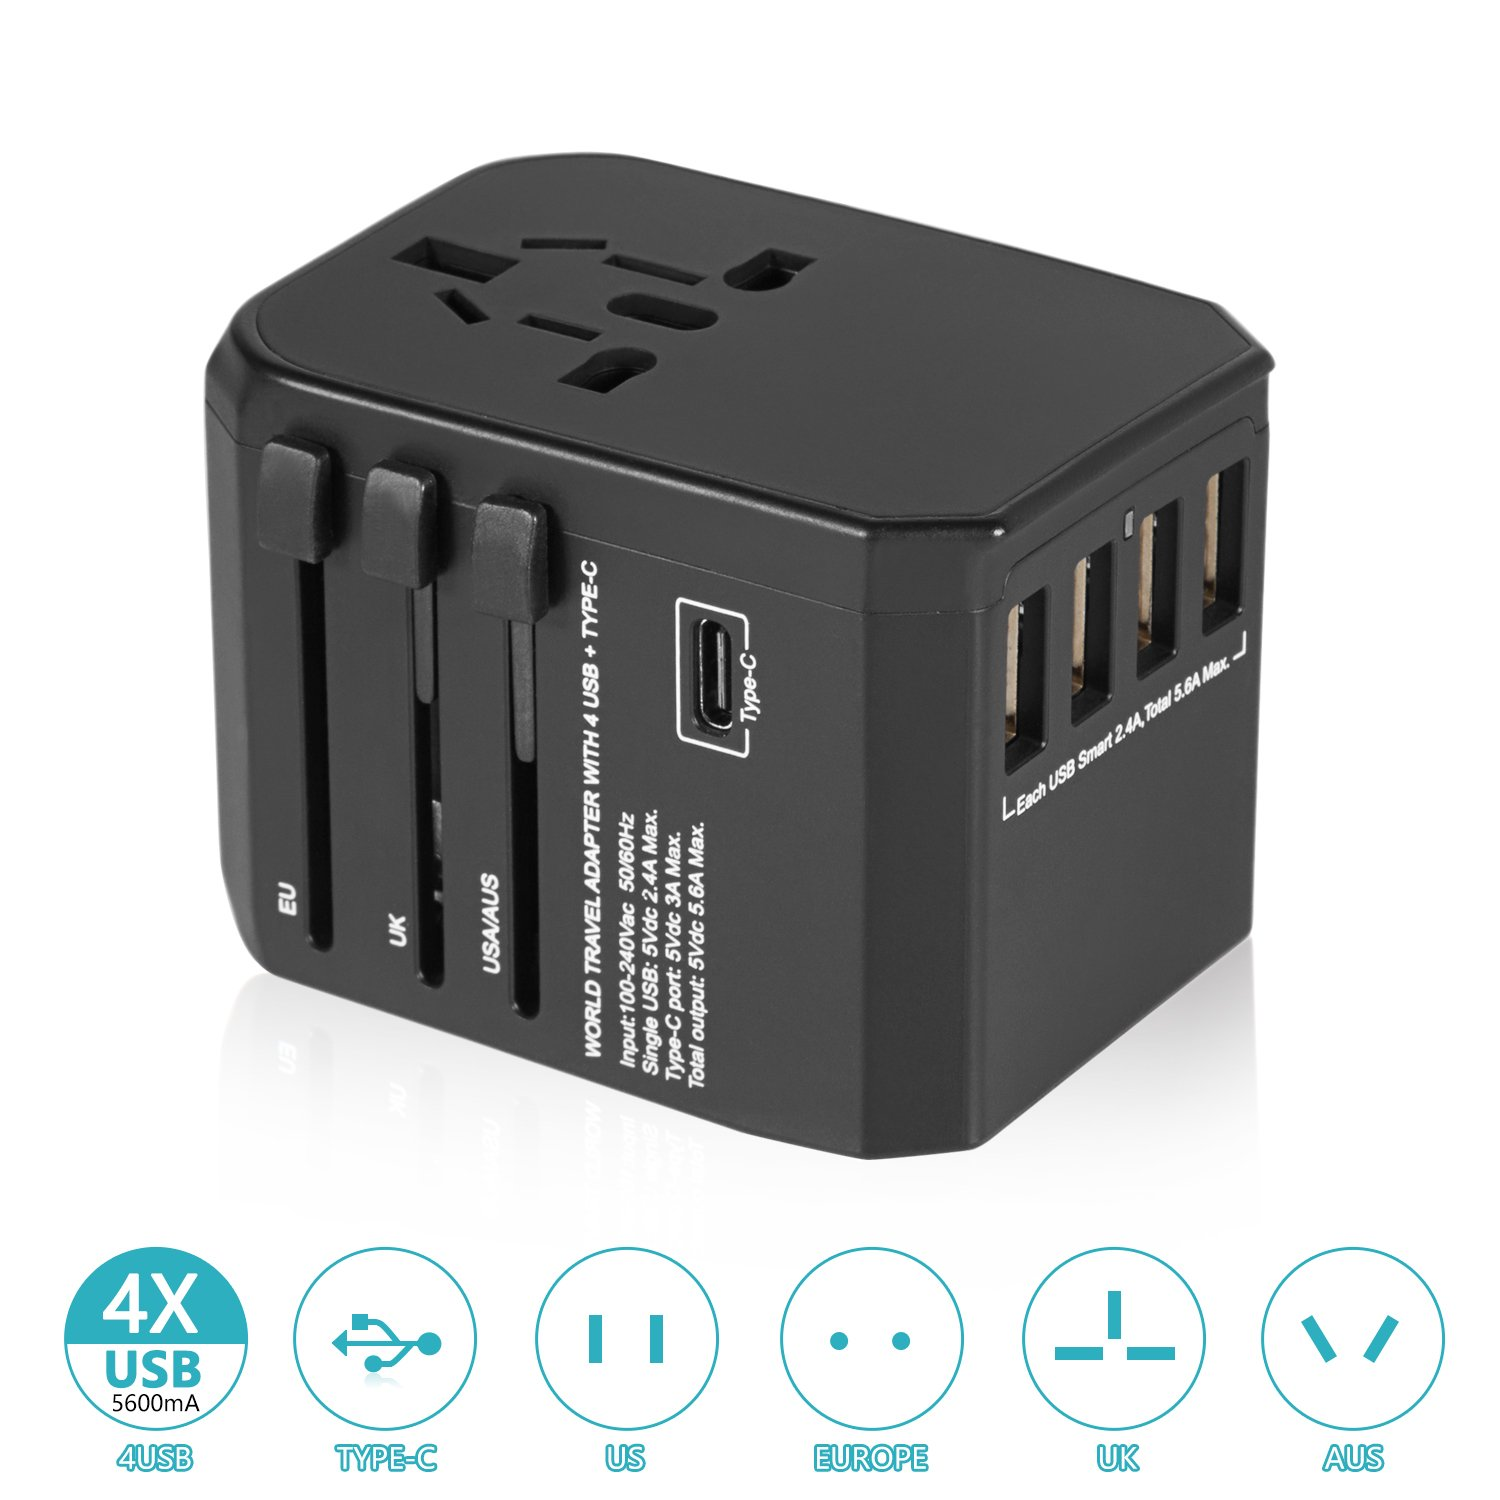 Worldwide Travel Charger, Travel Adapter Charger All in One International Travel Power Adapter Universal Travel Adapter with 5.6A 4 USB and 3.0A Type-C for Phone Laptop in EU/UK/US 150 Countries